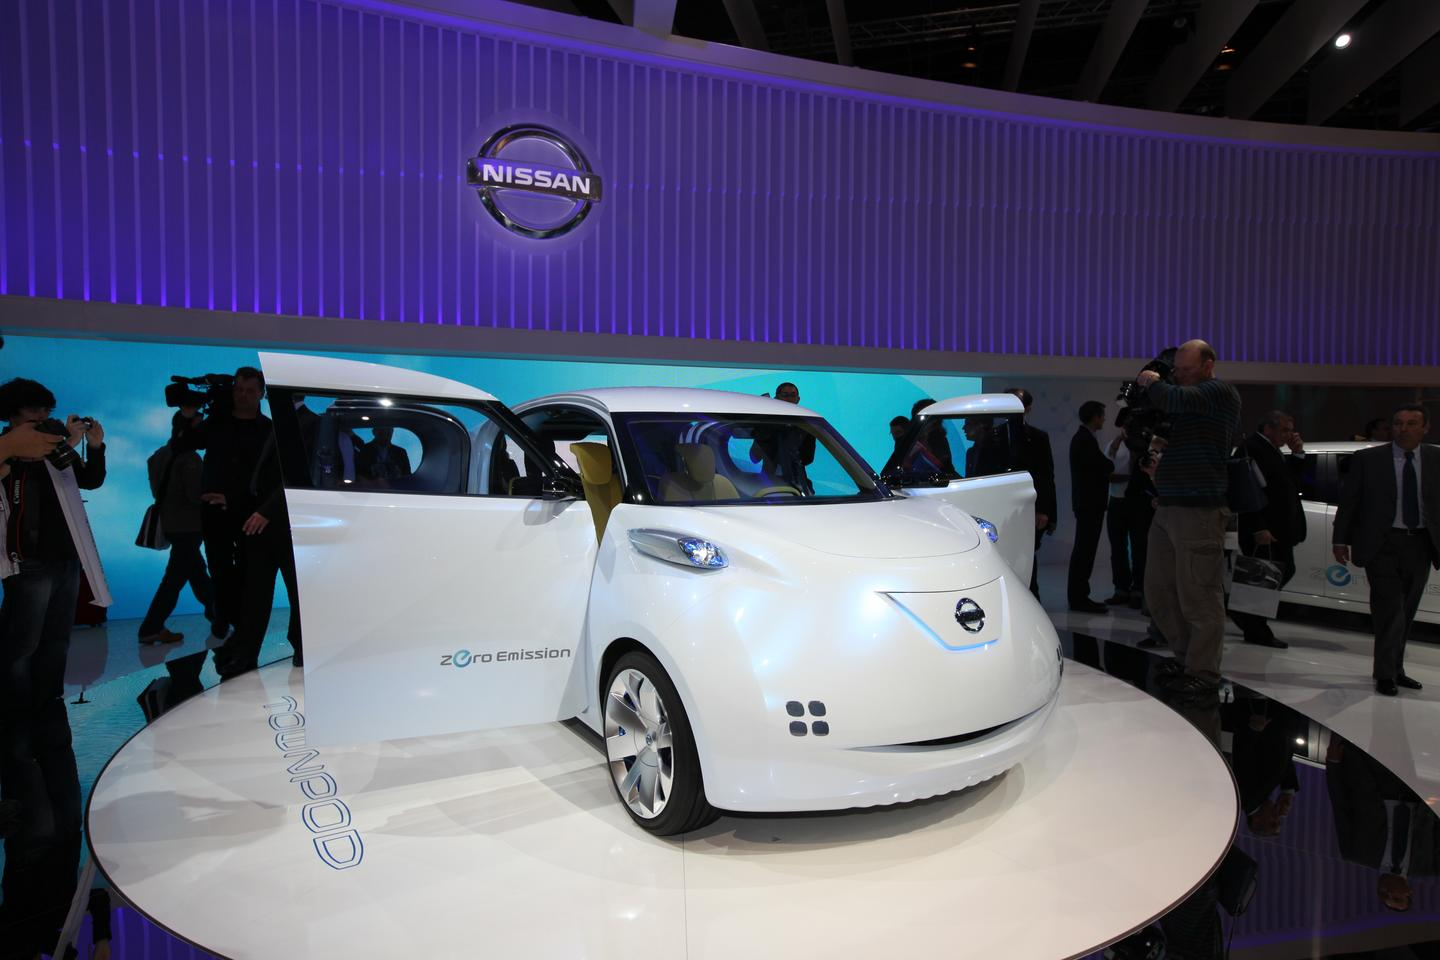 Nissan's Townpod concept looks almost cartoon-like from the front